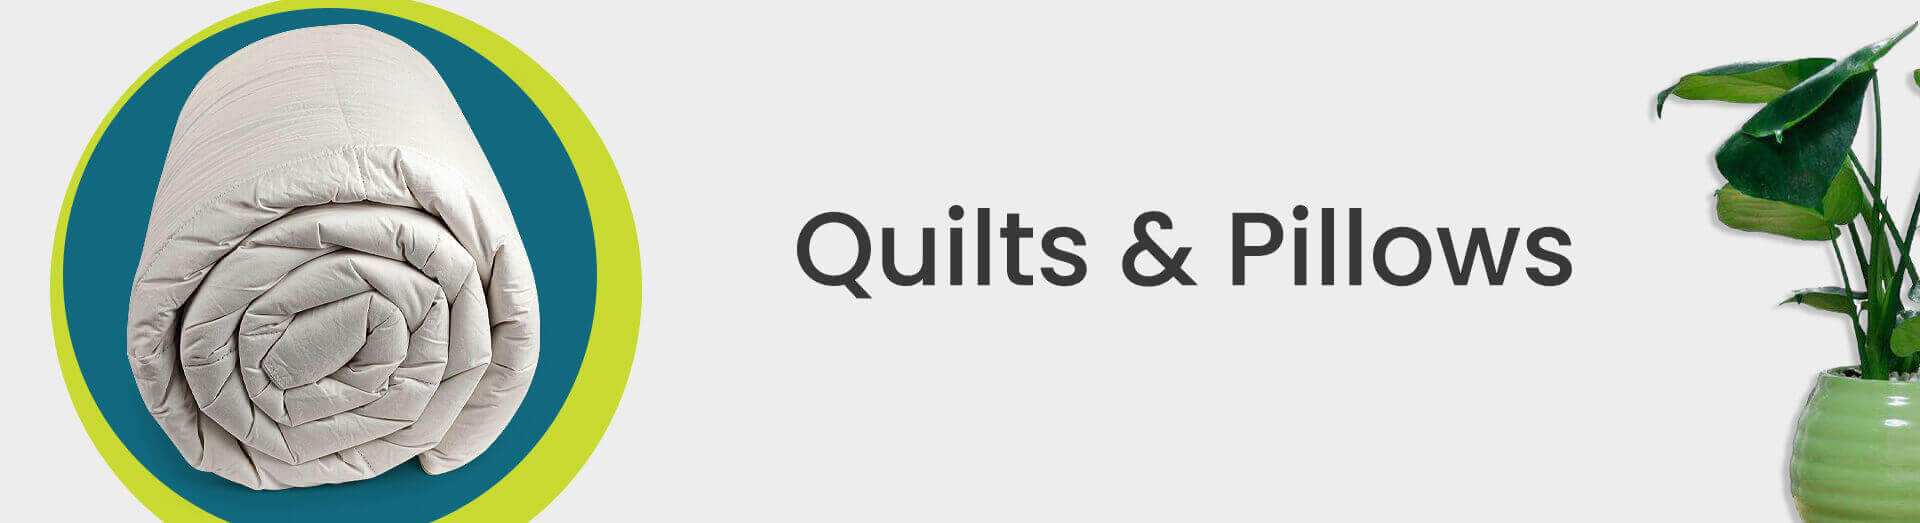 Quilts & Pillows